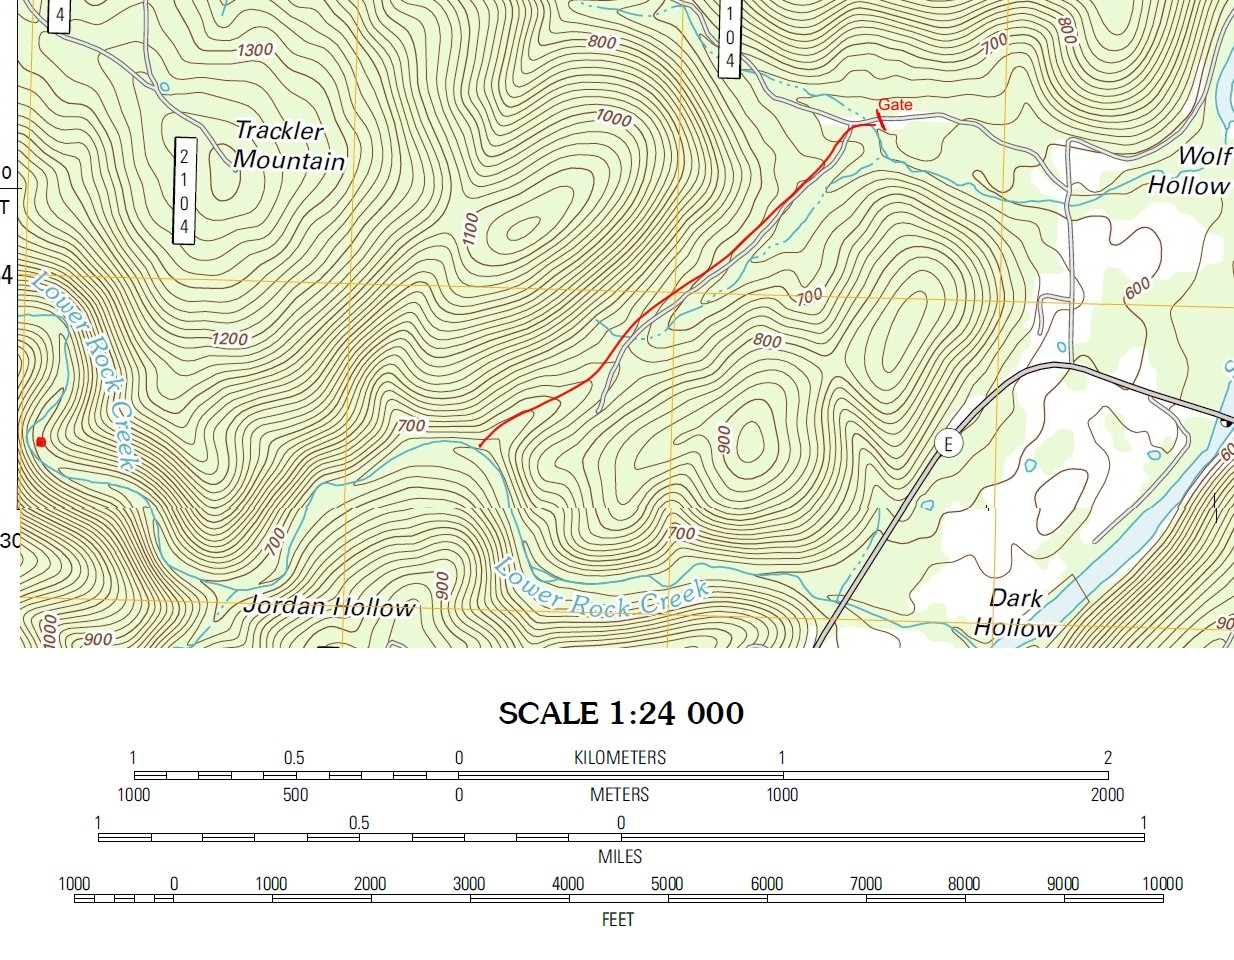 Cathedral Canyon - Where to get topo maps for hiking